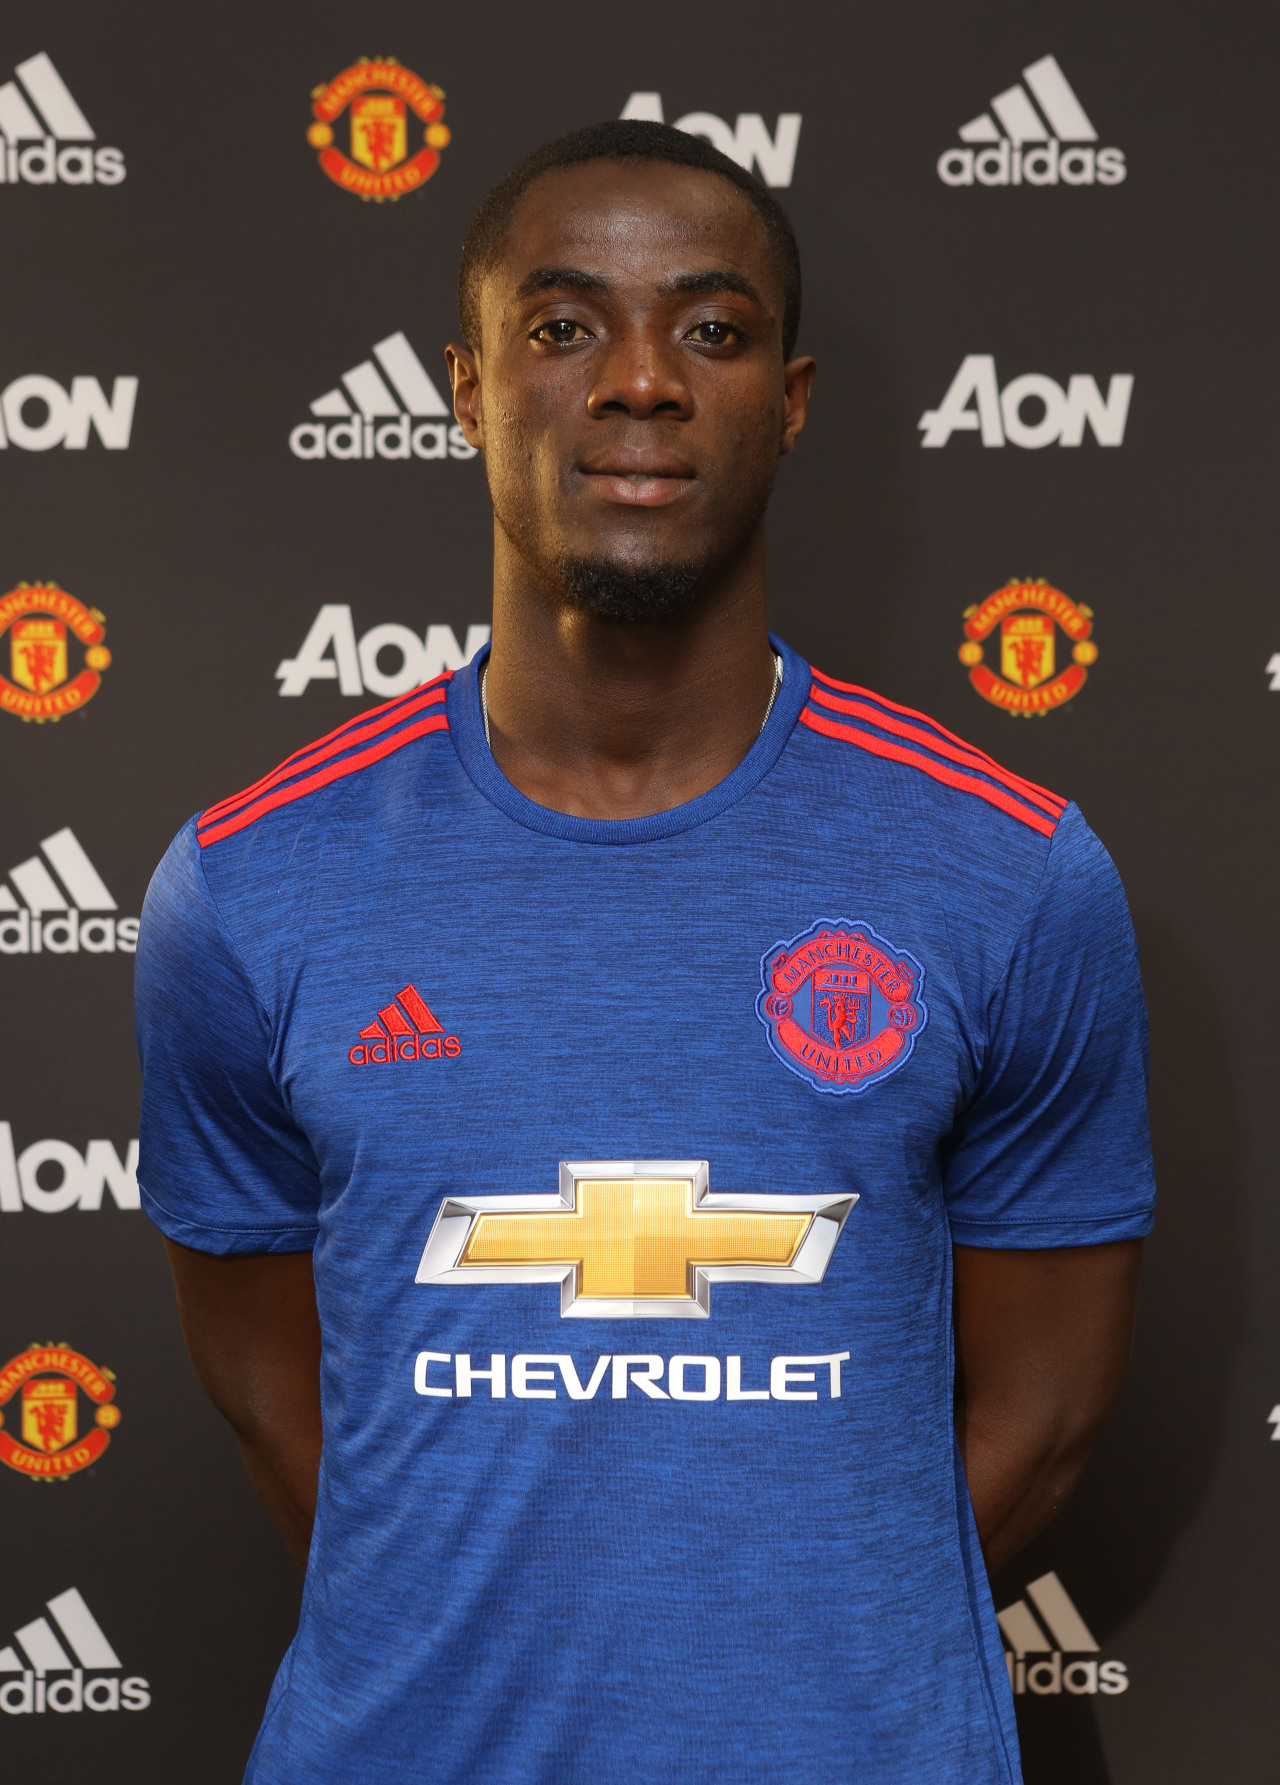 Manchester United is delighted to announce that Eric Bertrand Bailly has completed his transfer from Villarreal CF, subject to successfully obtaining a work permit. Eric joins on a four-year contract with the option to extend for a further two years.